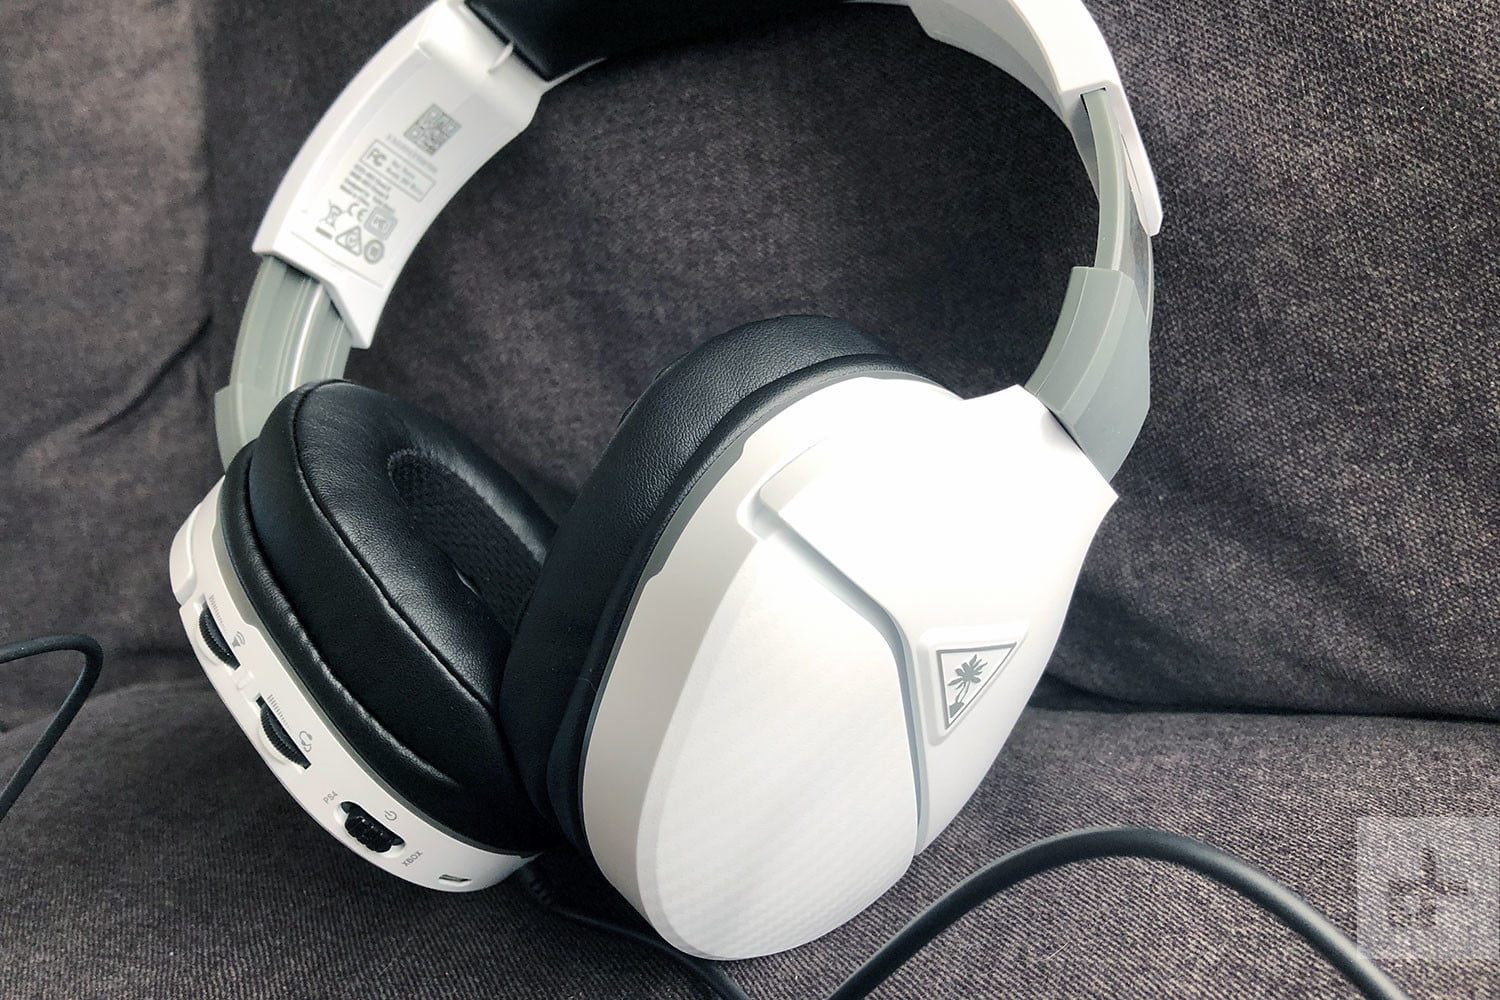 Turtle Beach Recon 200 Review: Superb Sound For Thrifty